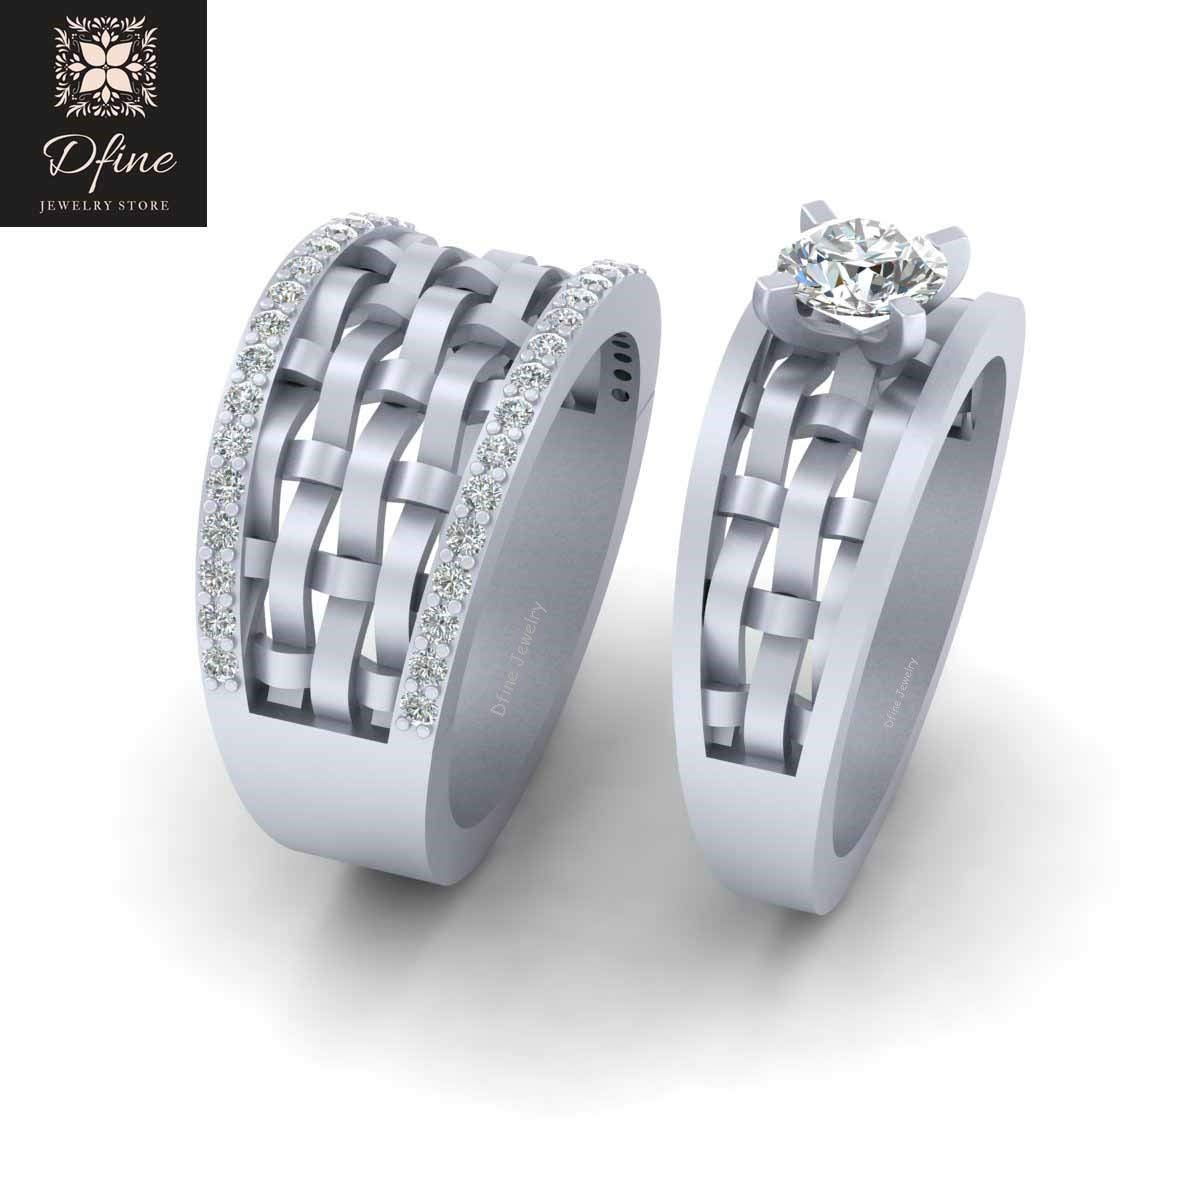 Matching Wedding Rings For Bride And Groom.Amazon Com Mesh Ring Solitaire Diamond Matching Bride And Groom